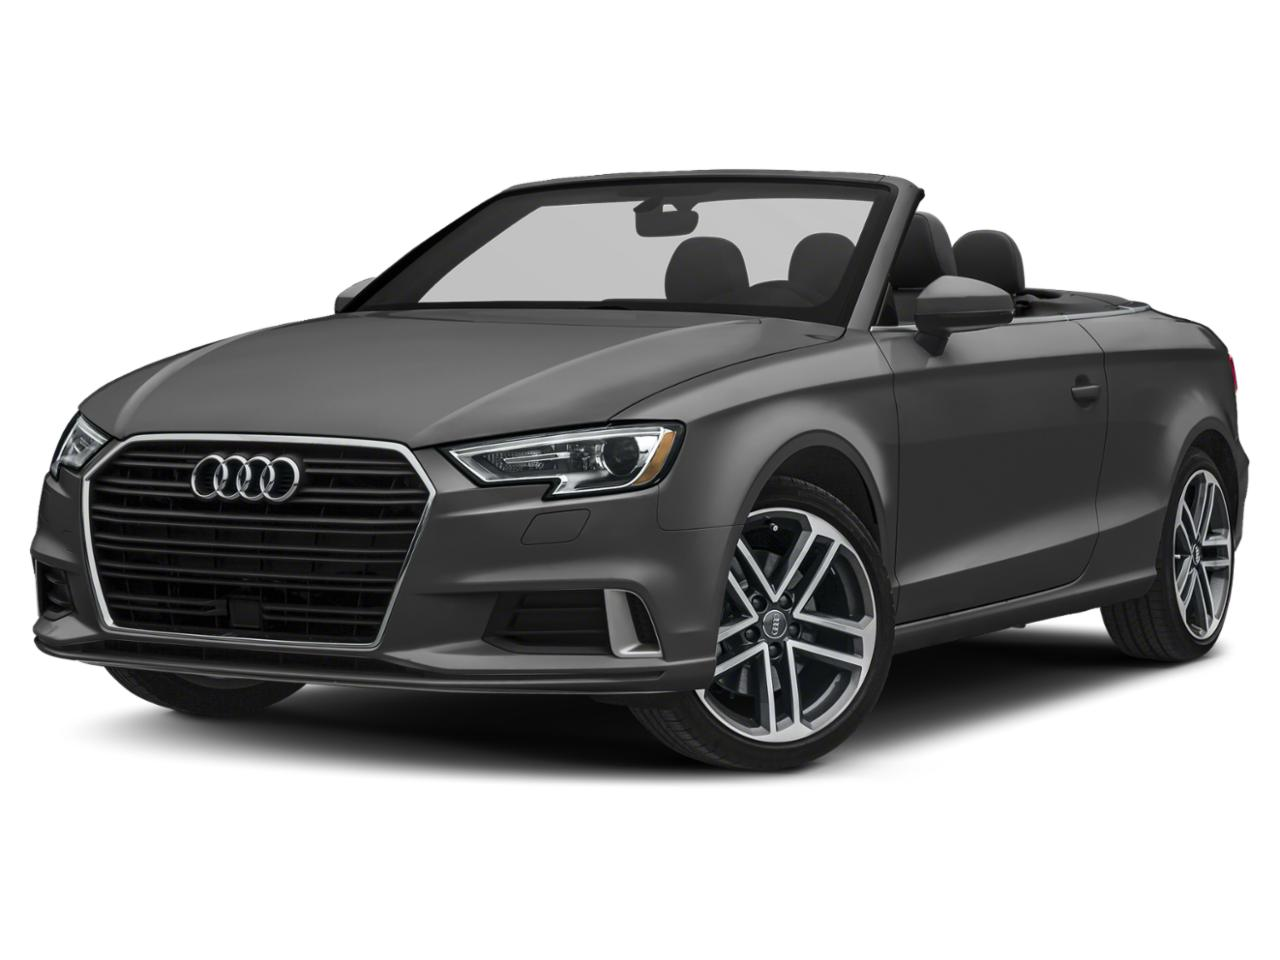 2018 Audi A3 Cabriolet Vehicle Photo in Allentown, PA 18103